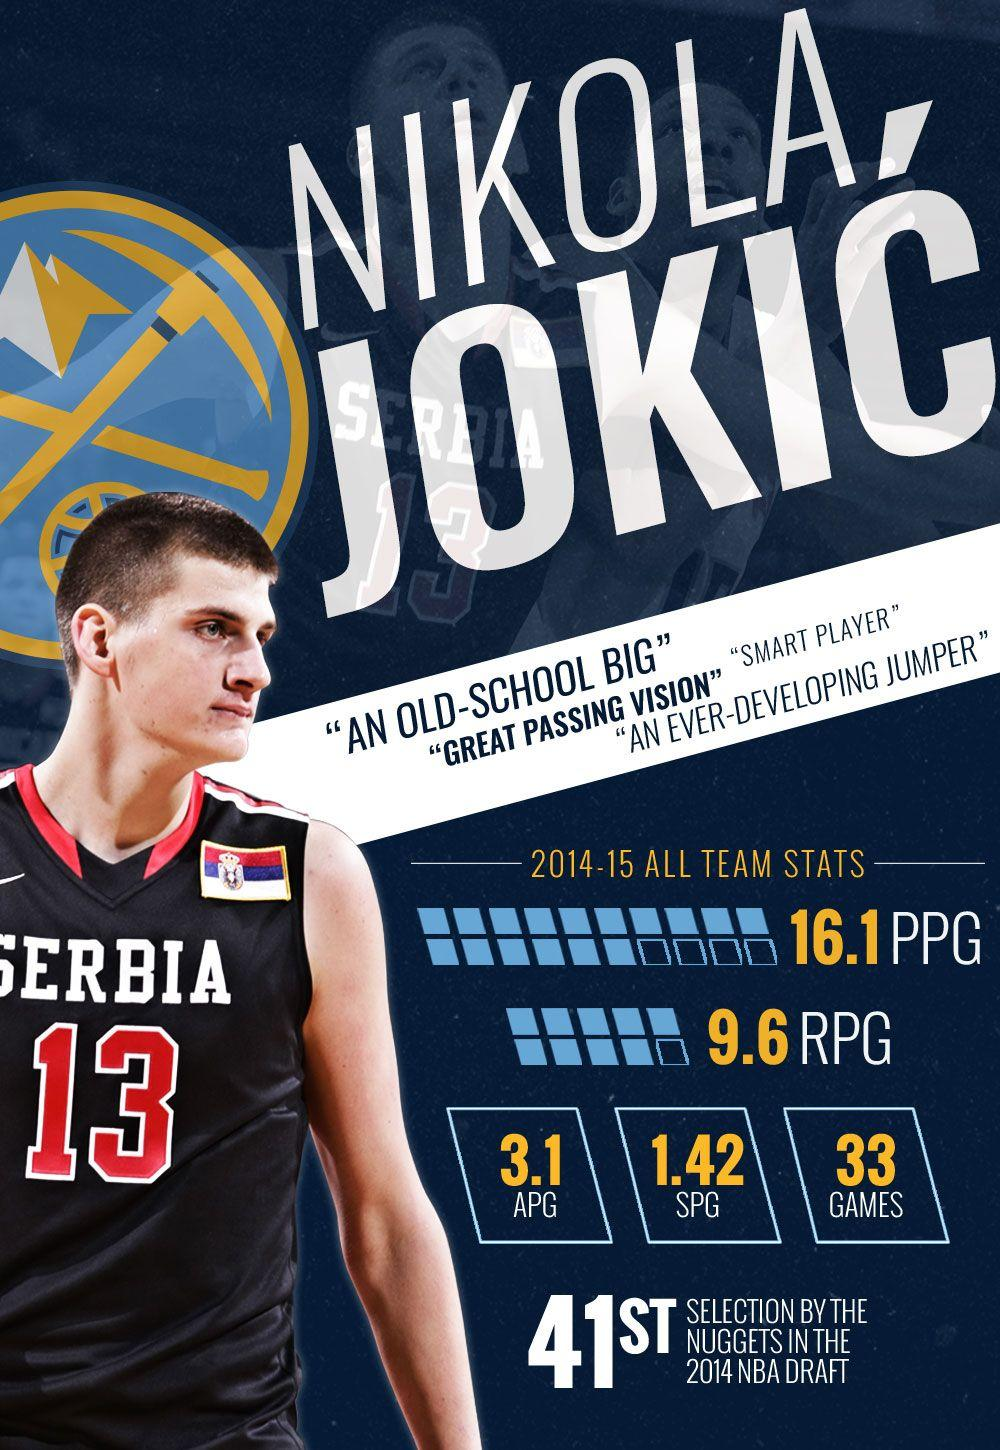 Nikola Jokic Infographic | Denver Nuggets